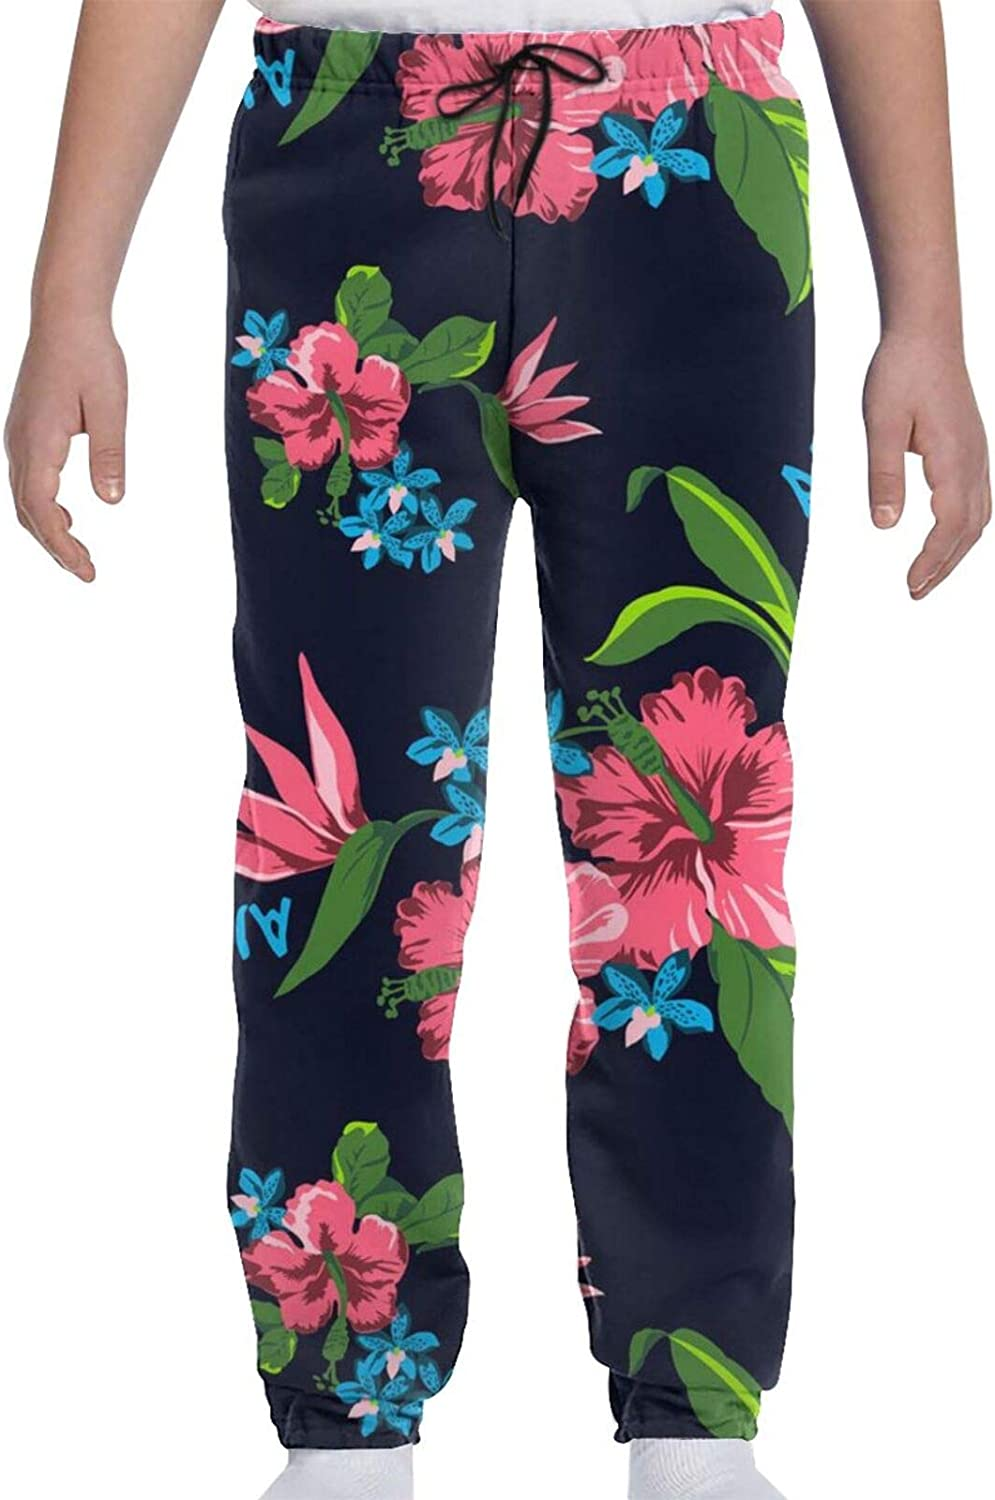 Oomato Heart 3D Youth Sweatpants Print At the price Rare G Teens Trousers Boys